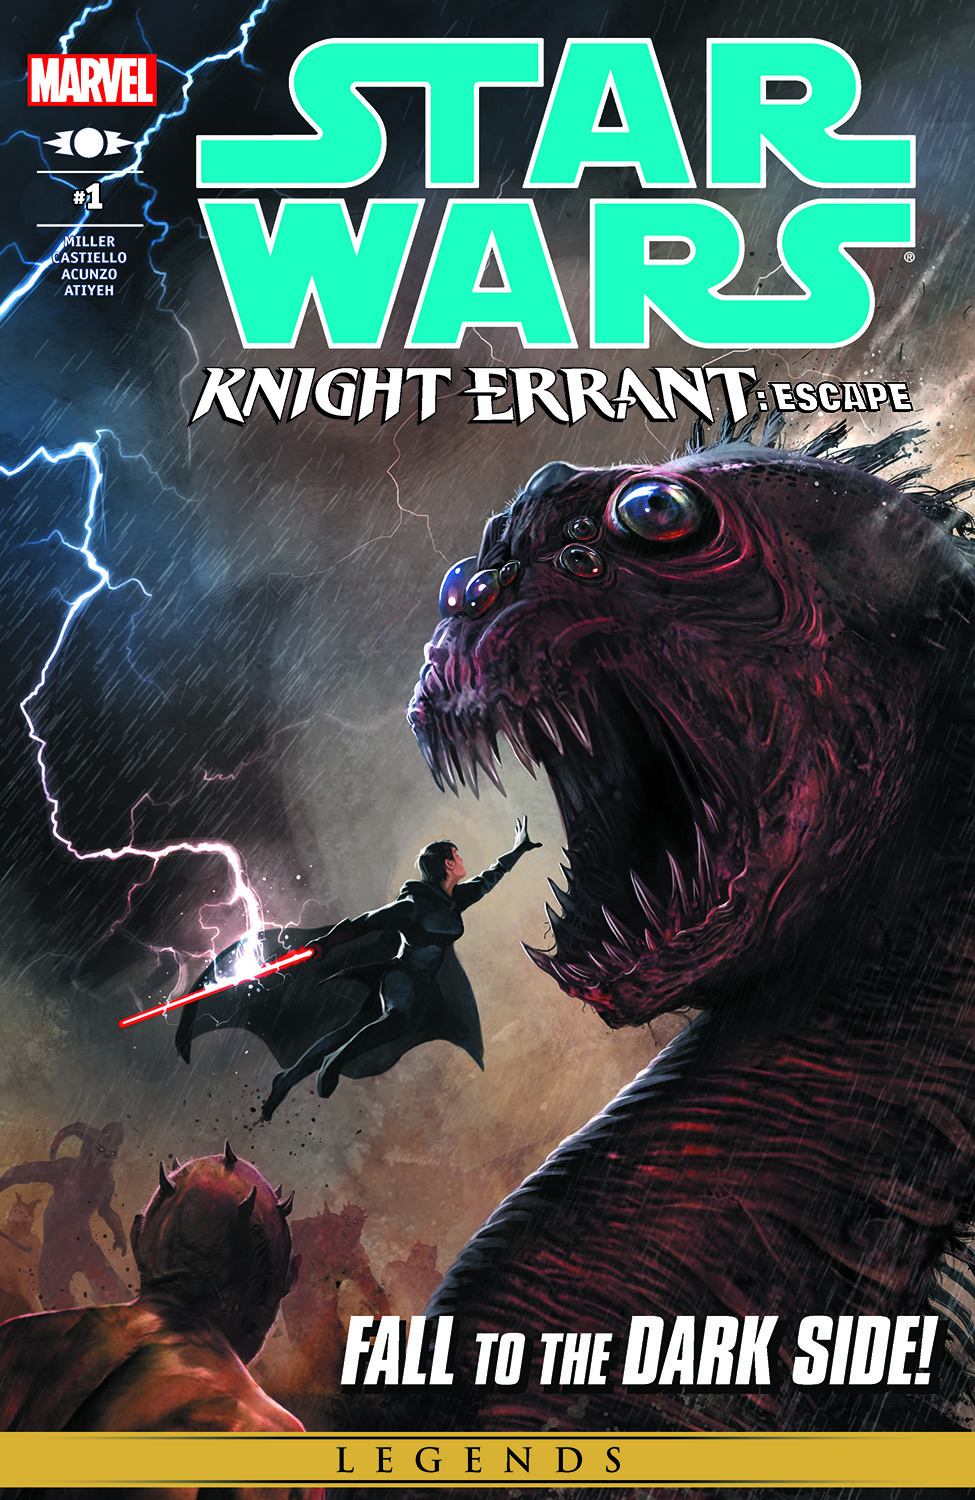 Star Wars: Knight Errant - Escape (2012) #1